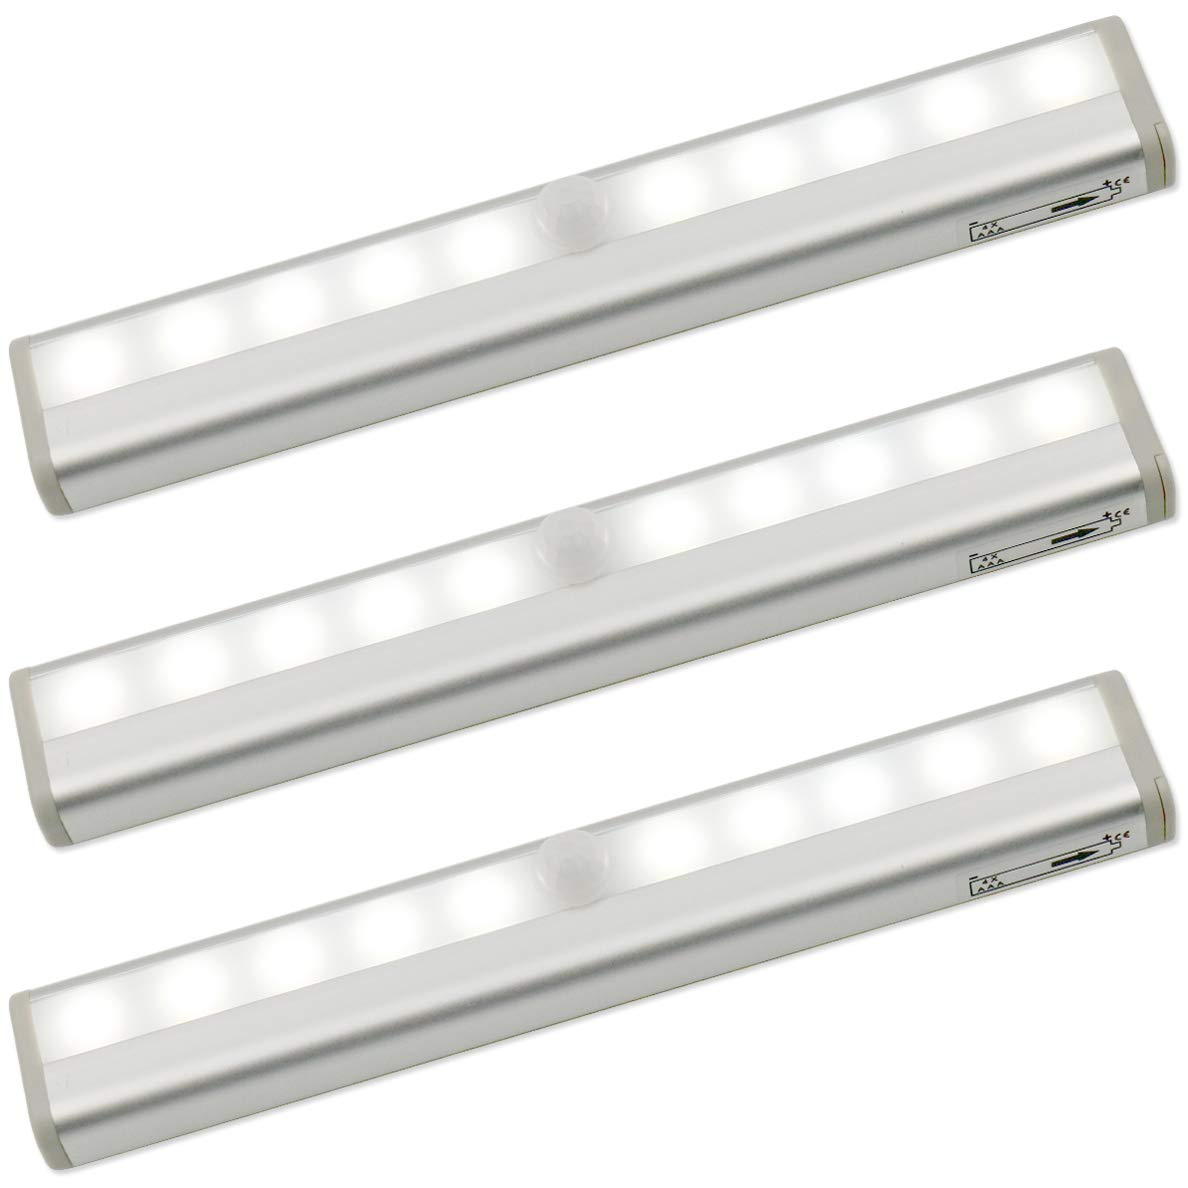 Lhomeled Motion Sensor Light,Portable Magnetic Security Closet Light,10 LED Bulbs Battery Operated Wireless Motion Nightlight,Stick on Anywhere Night Light Bar for Hallway Stairway Wardrobe,3 Pack.